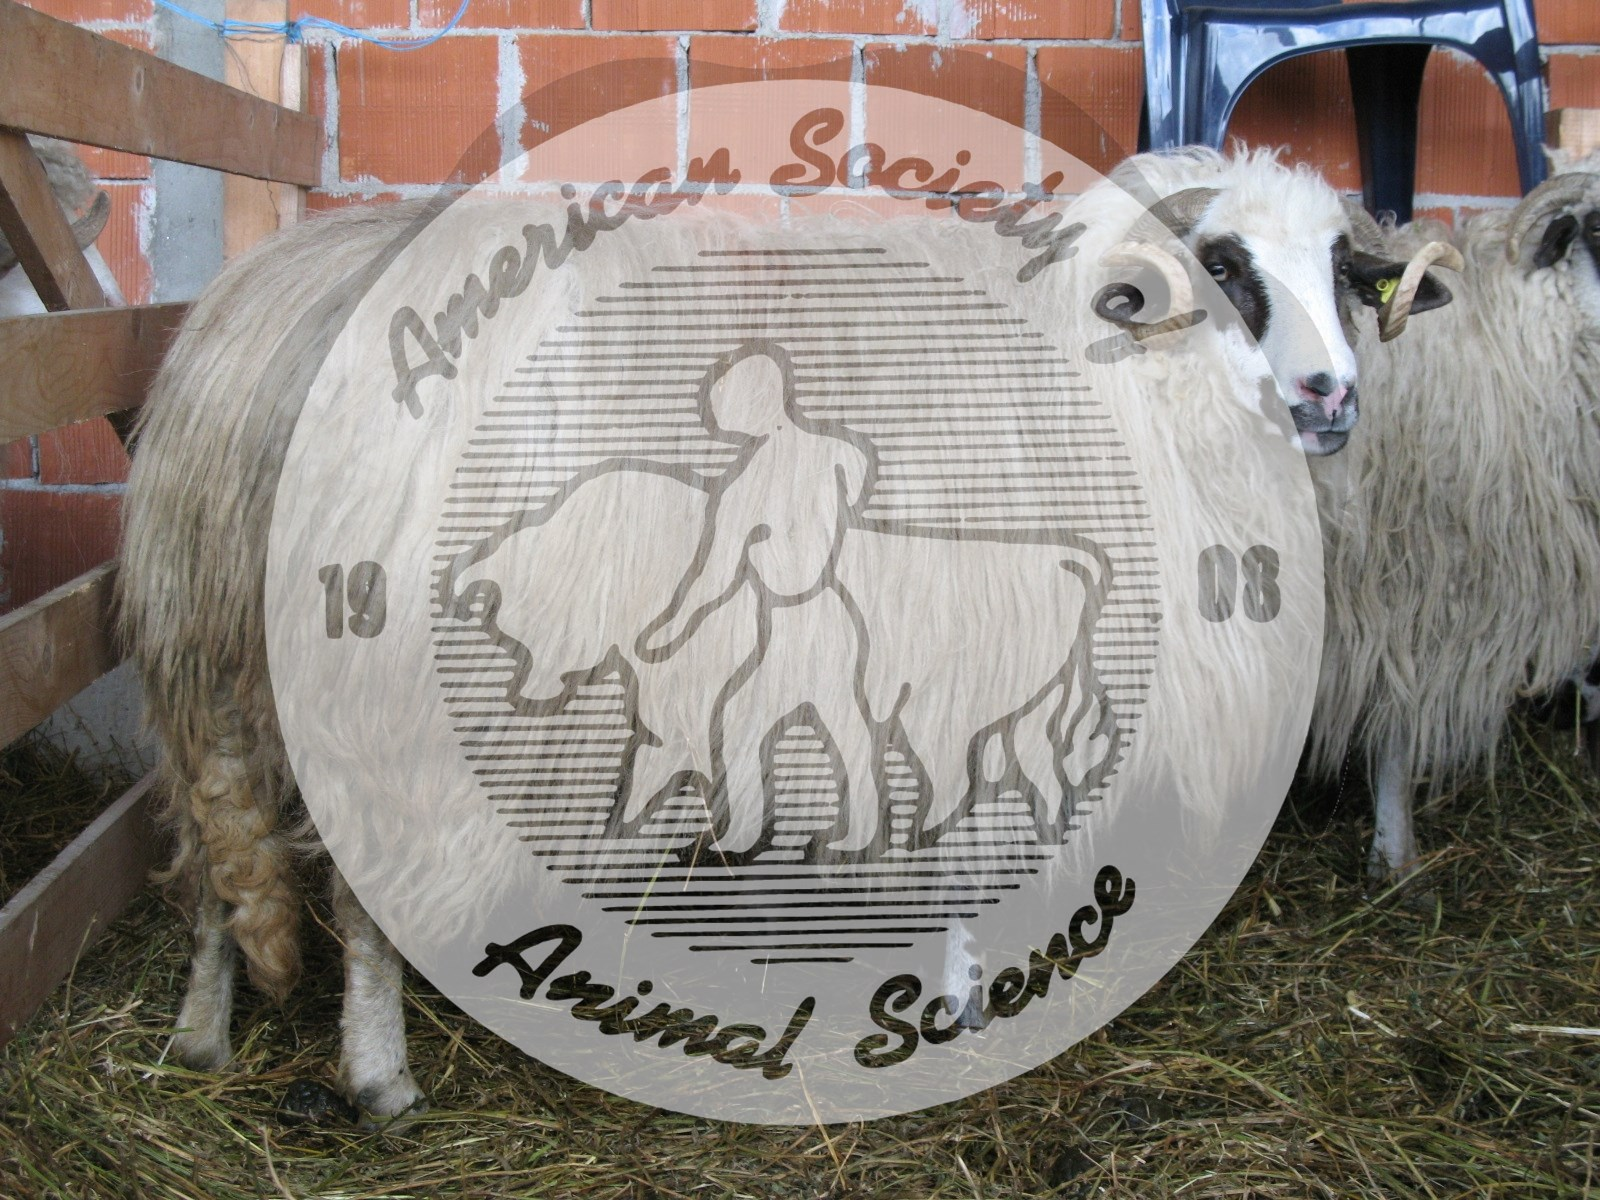 The Tsurcana breed has evolved since prehistoric times, principally in the Carpathian Mountains.  Constituting the principal breed in Romania, they are used for milk, meat and coarse wool often used for oriental carpets.  Mature rams average about 70 kg bodyweight; mature ewes nearly 50 kg; lambs about 3.5 kg at birth and 30 kg at 150 days of age.  All rams and half of ewes are horned.  NAL # 5142 illustrates a Tsurcana ram.  The Image Gallery home page shows a link to Breeds of Livestock including sheep.